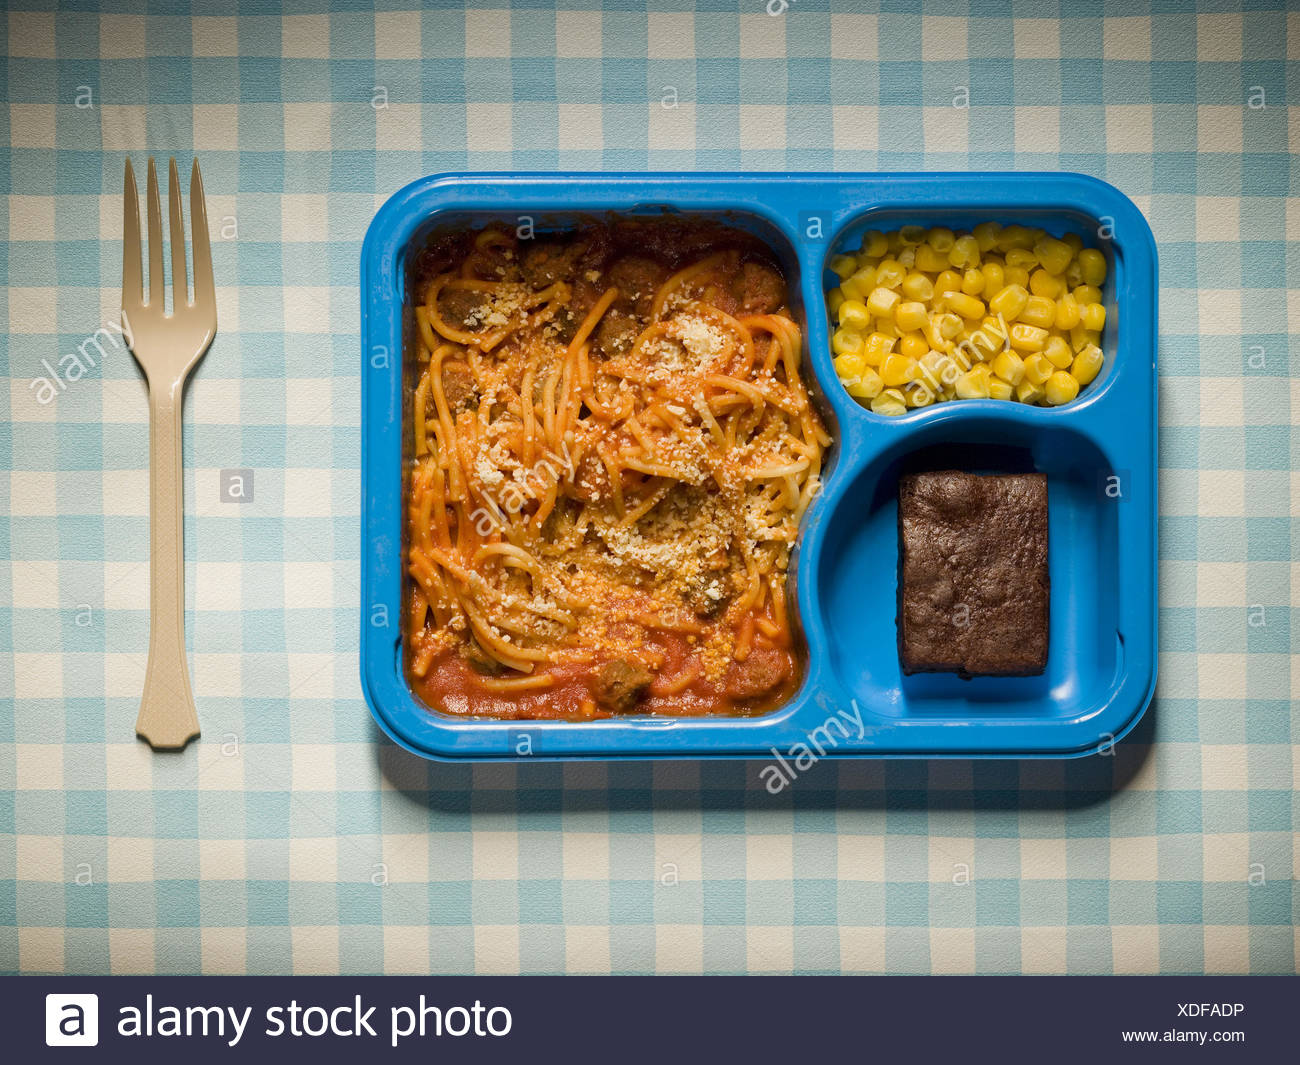 TV Dinner with plastic fork - Stock Image